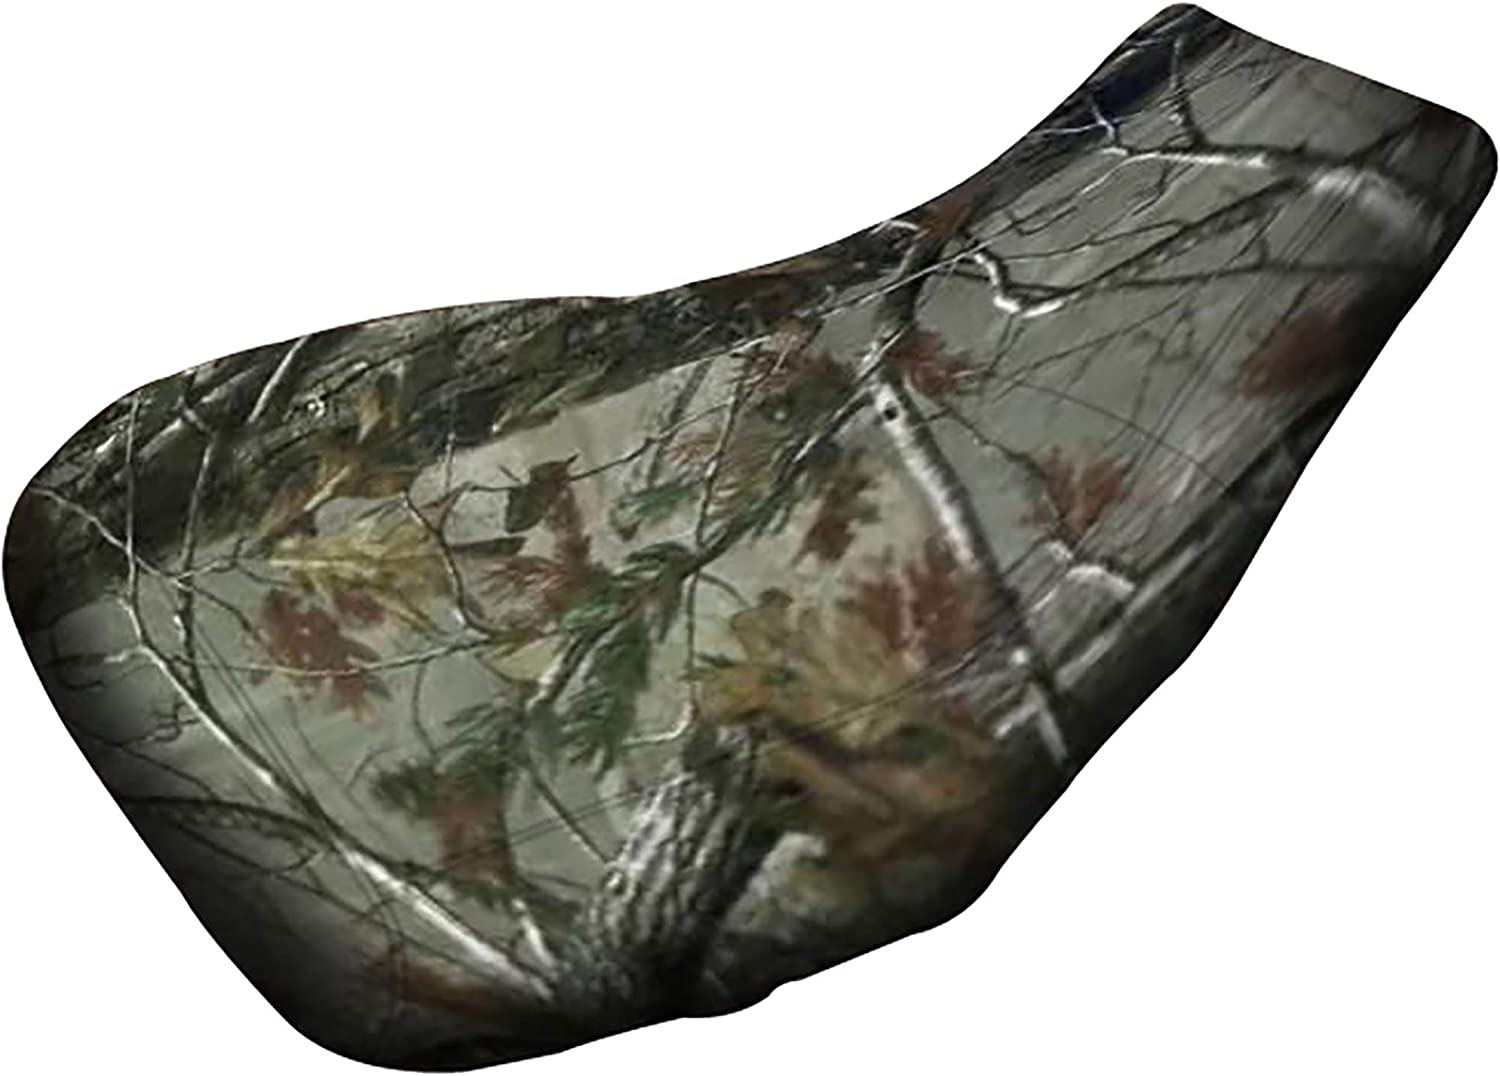 Bombing free shipping VPS Seat Cover Compatible With Yamaha All service Sea Camo 10-12 YFZ450R